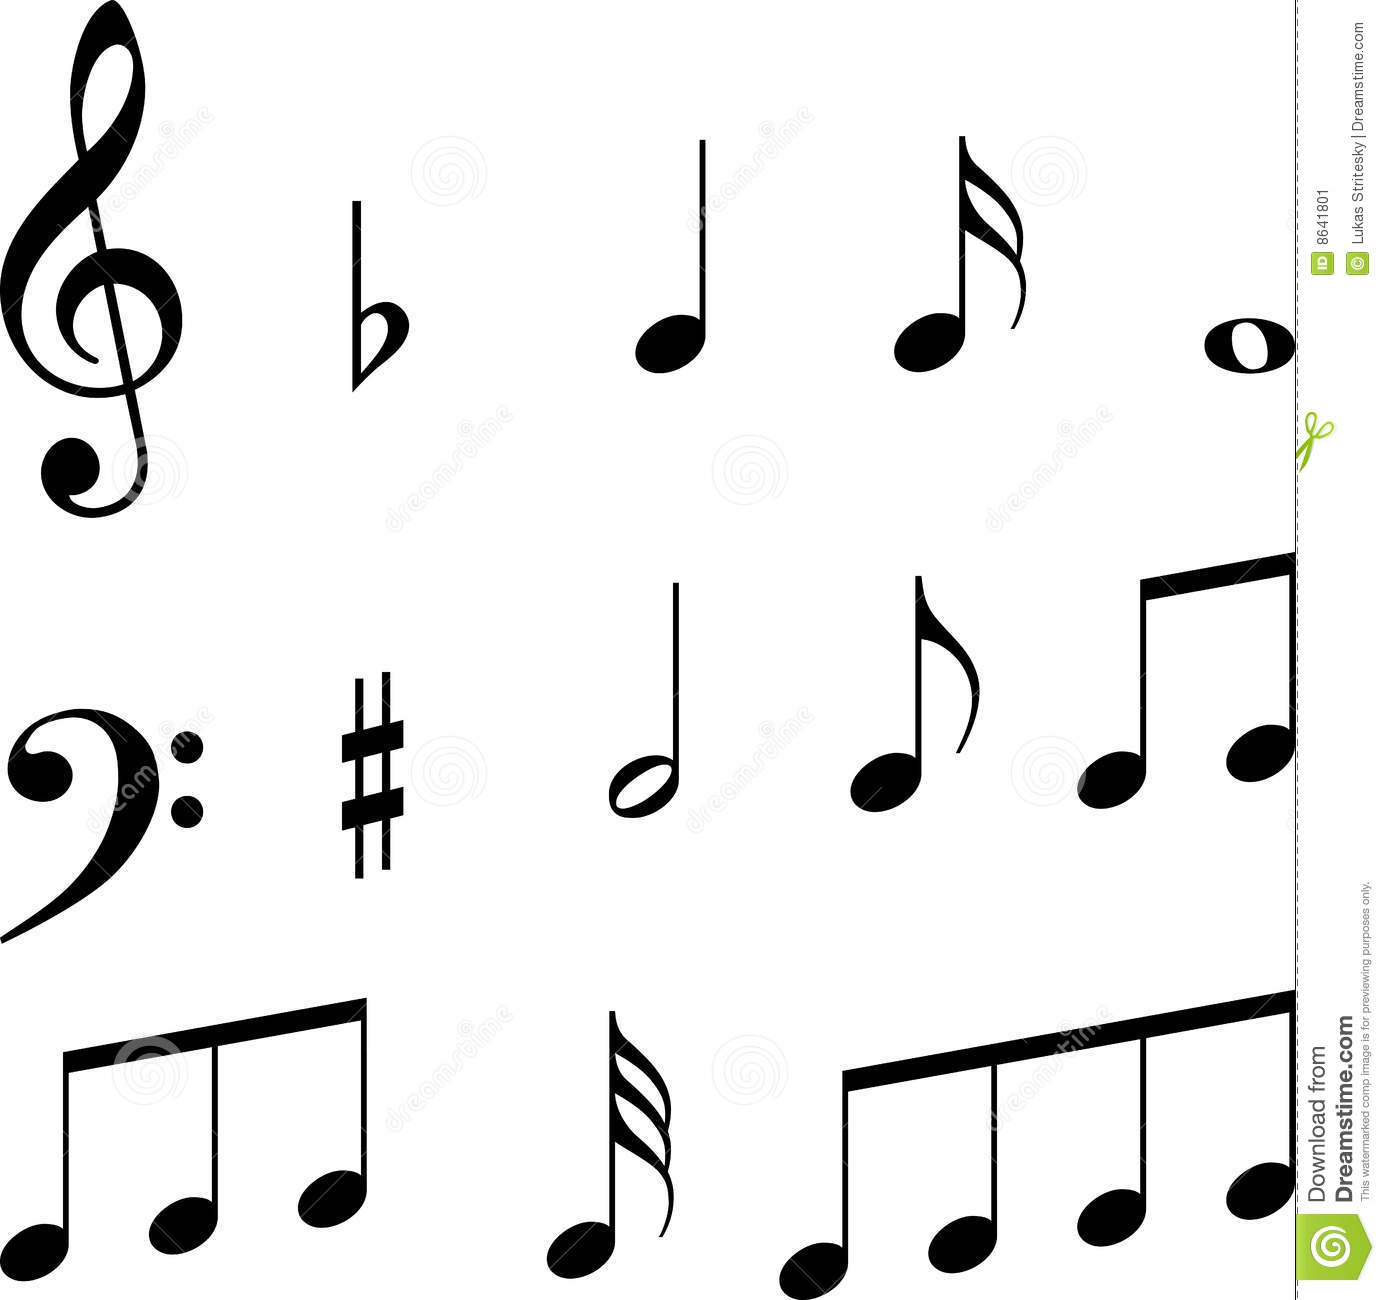 Music Notes Symbols For Facebook.